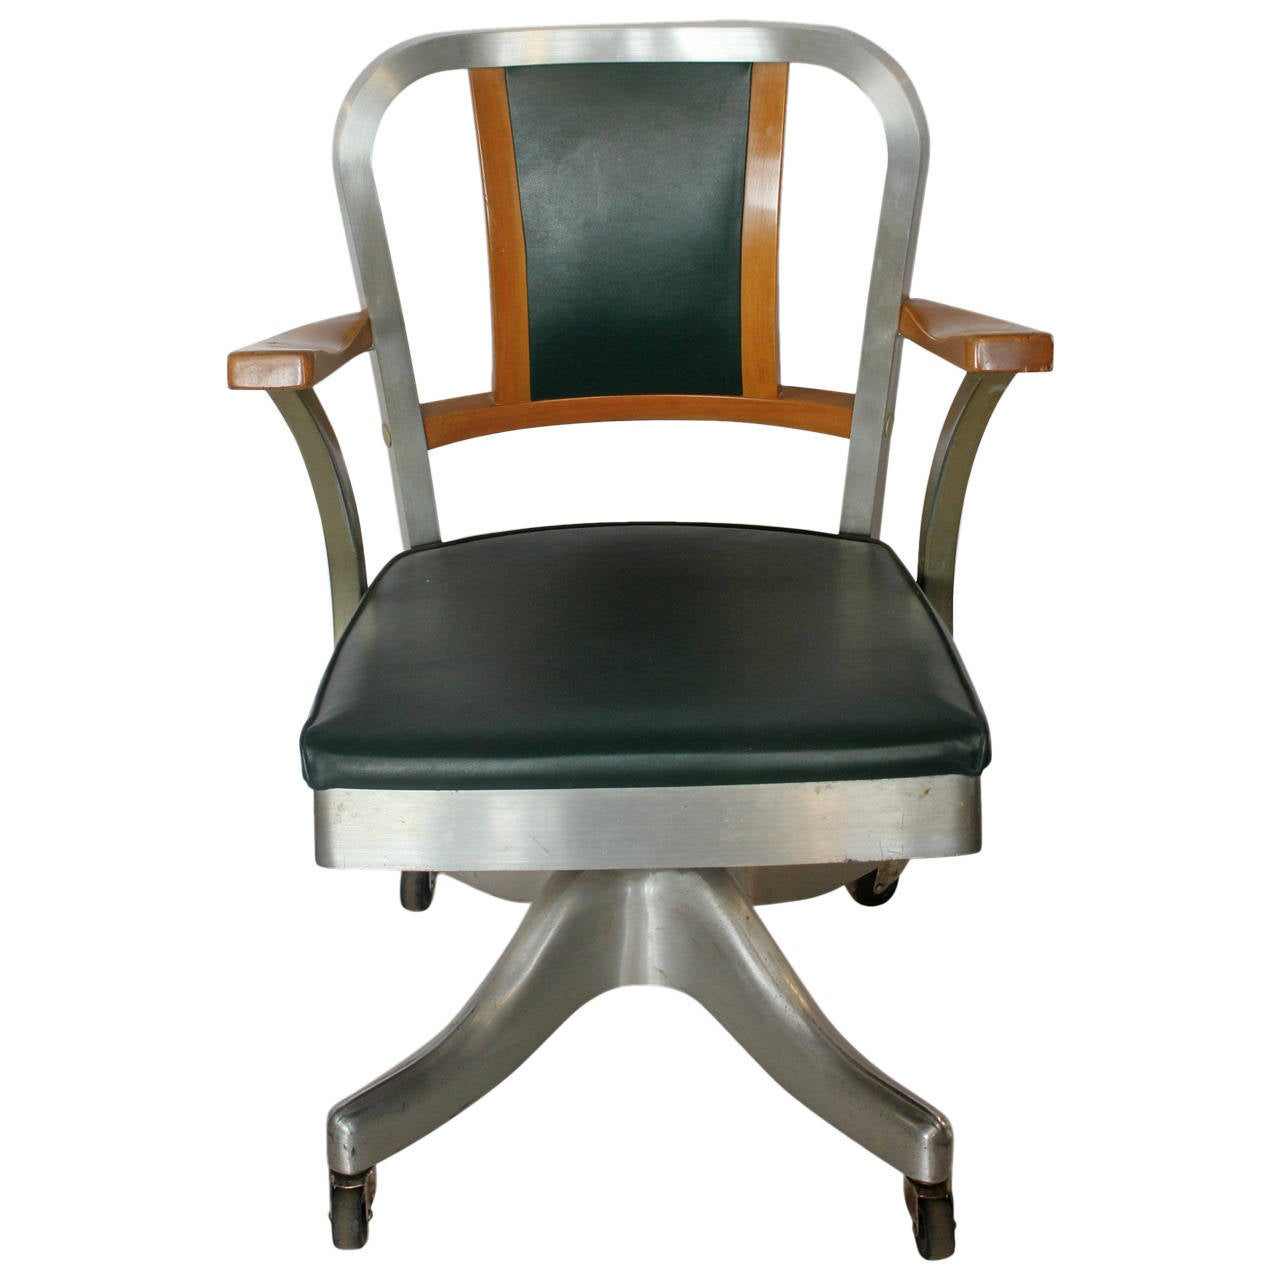 shaw walker chair wicker dining chairs nz 1940s desk by at 1stdibs